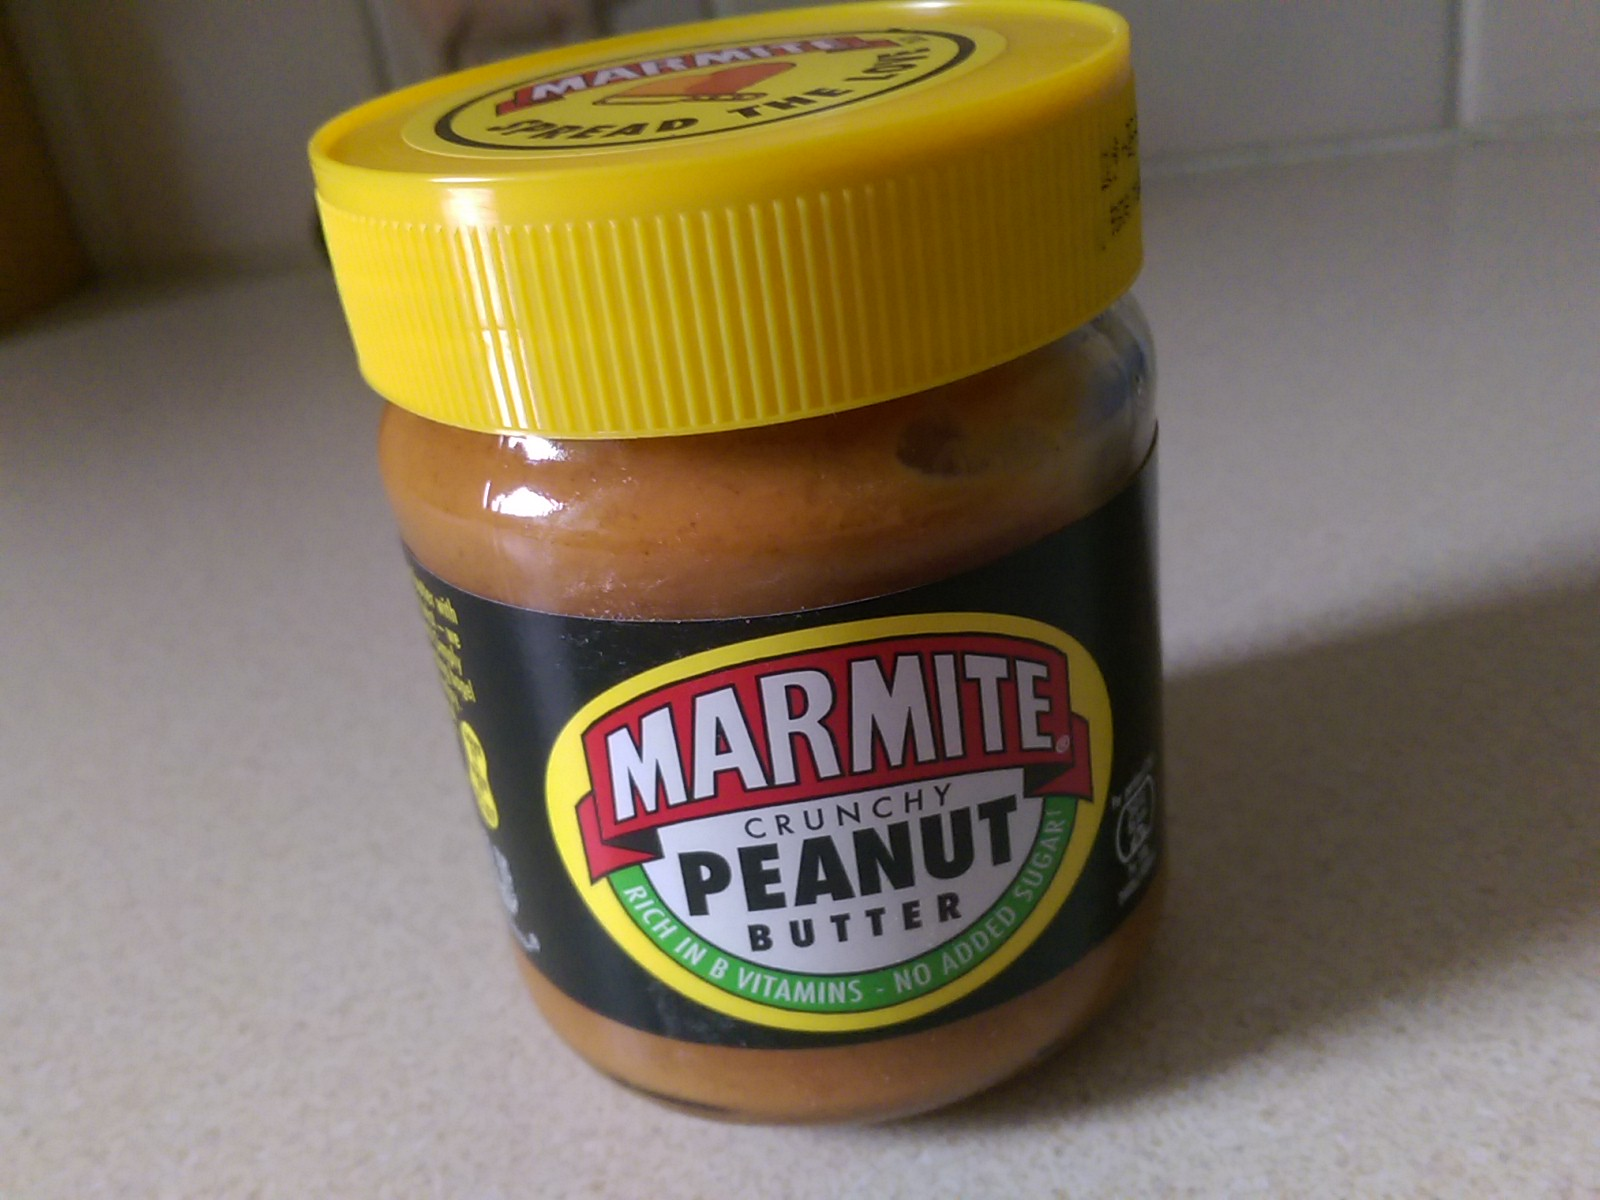 A jar of peanut butter flavoured marmite